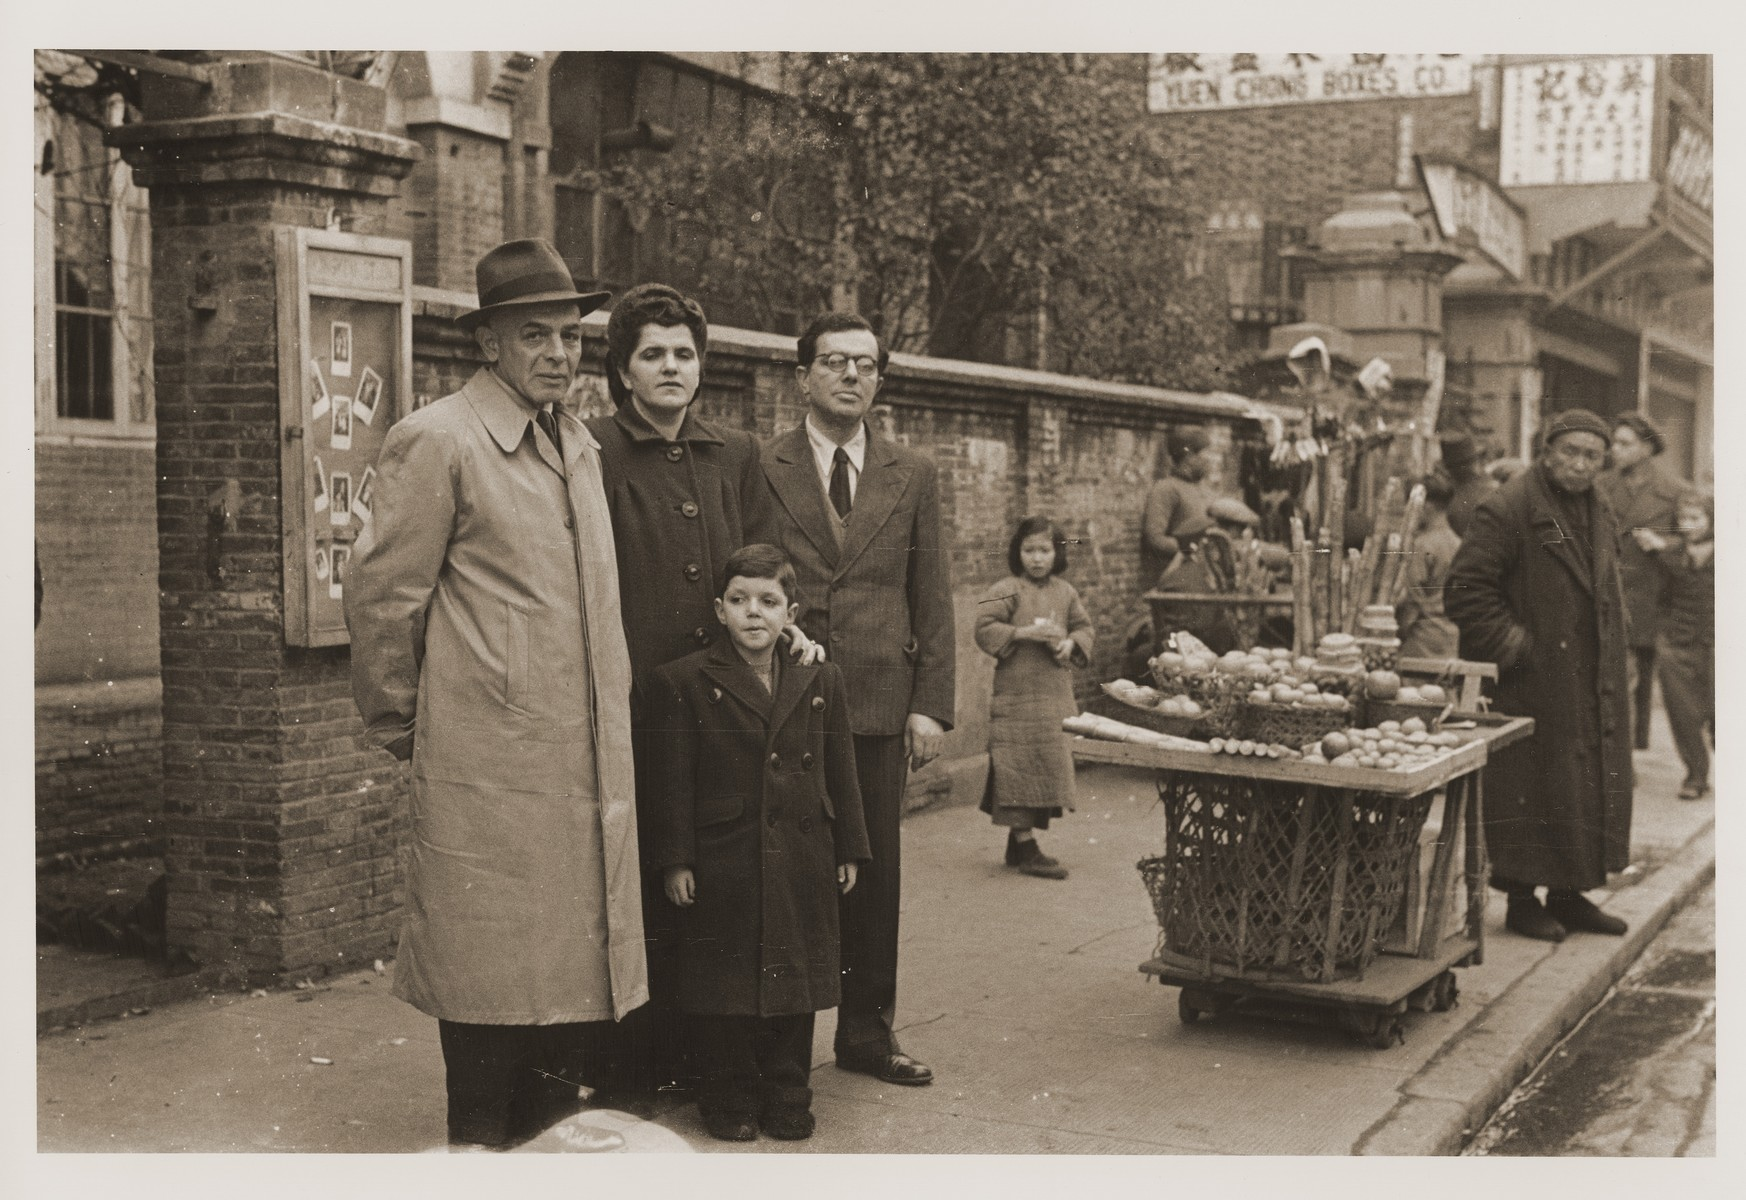 The Fiedler family poses in front of their home on Tongshan Road.    Pictured from left to right are Ernst Paschkes, Berta,  Harry, and Oskar Fiedler.